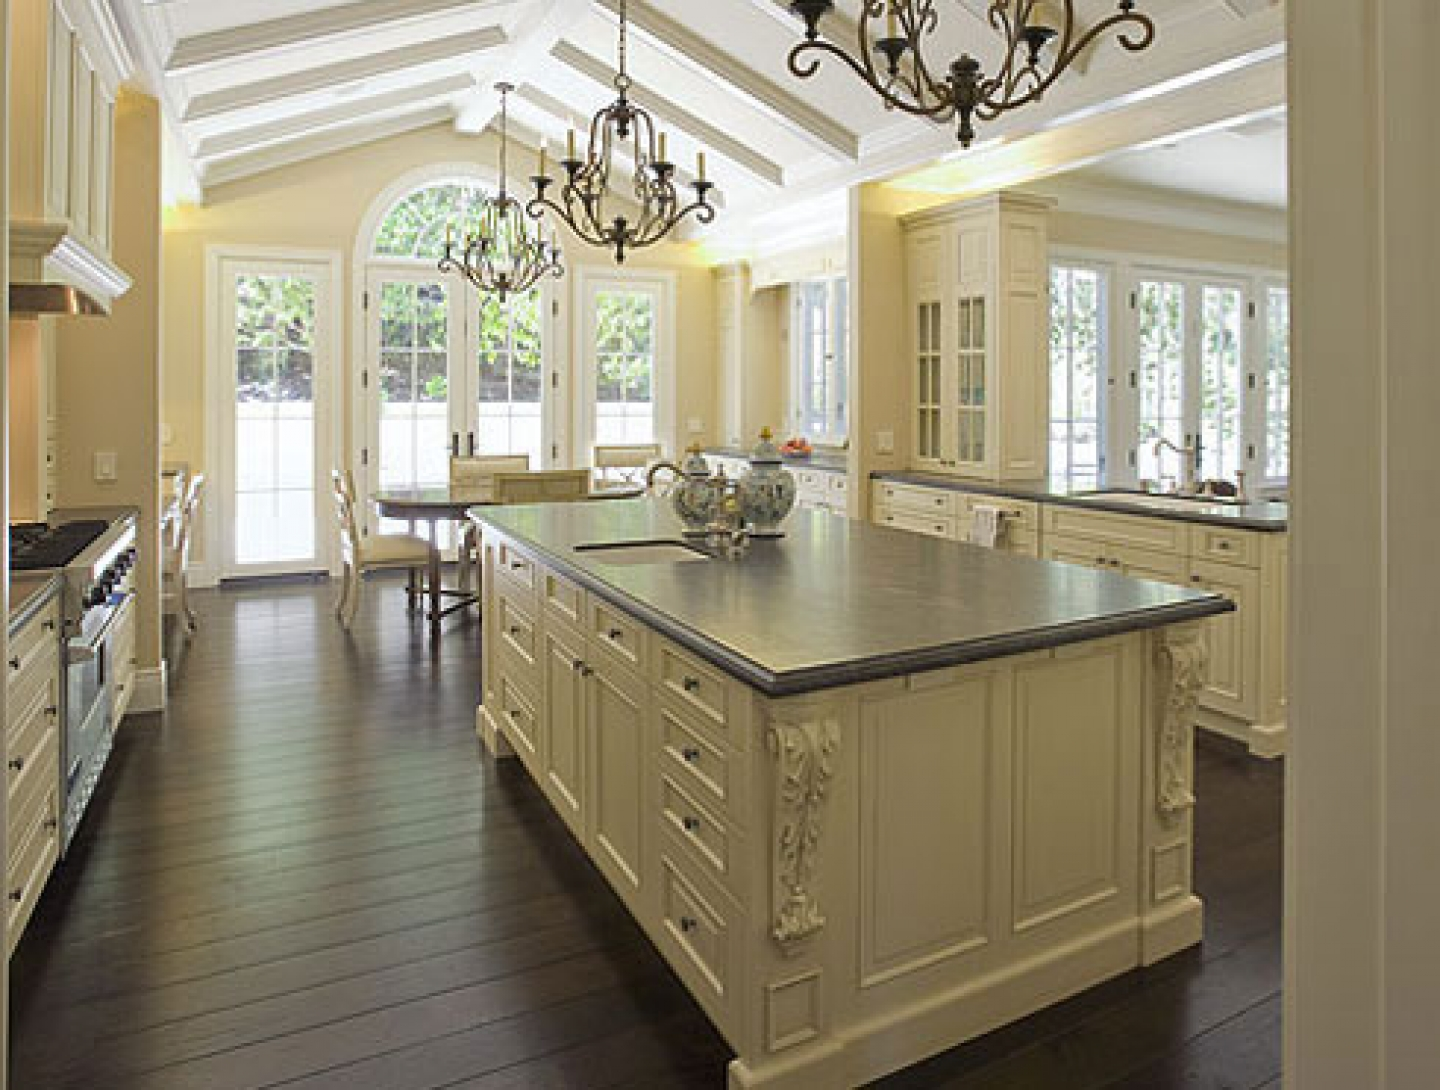 Free download Pictures of french country kitchen design ...